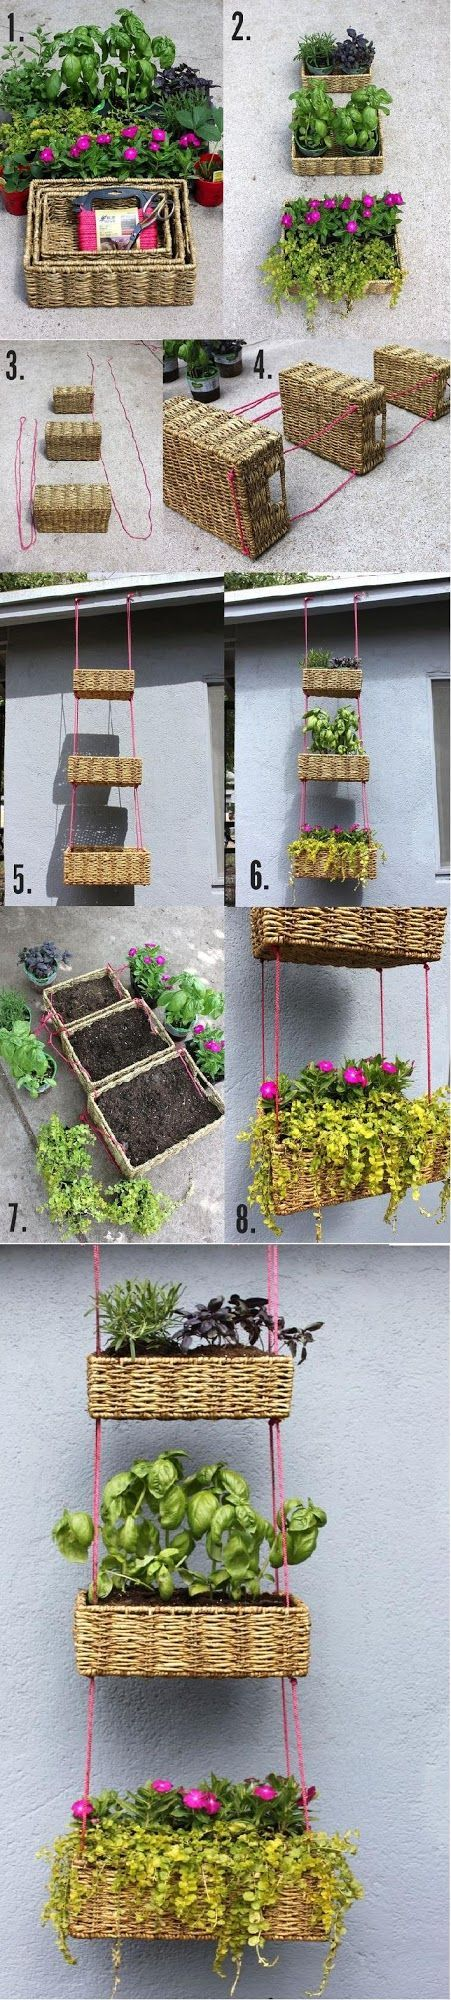 Backyard Decorating - DIY and Crafts Ideas